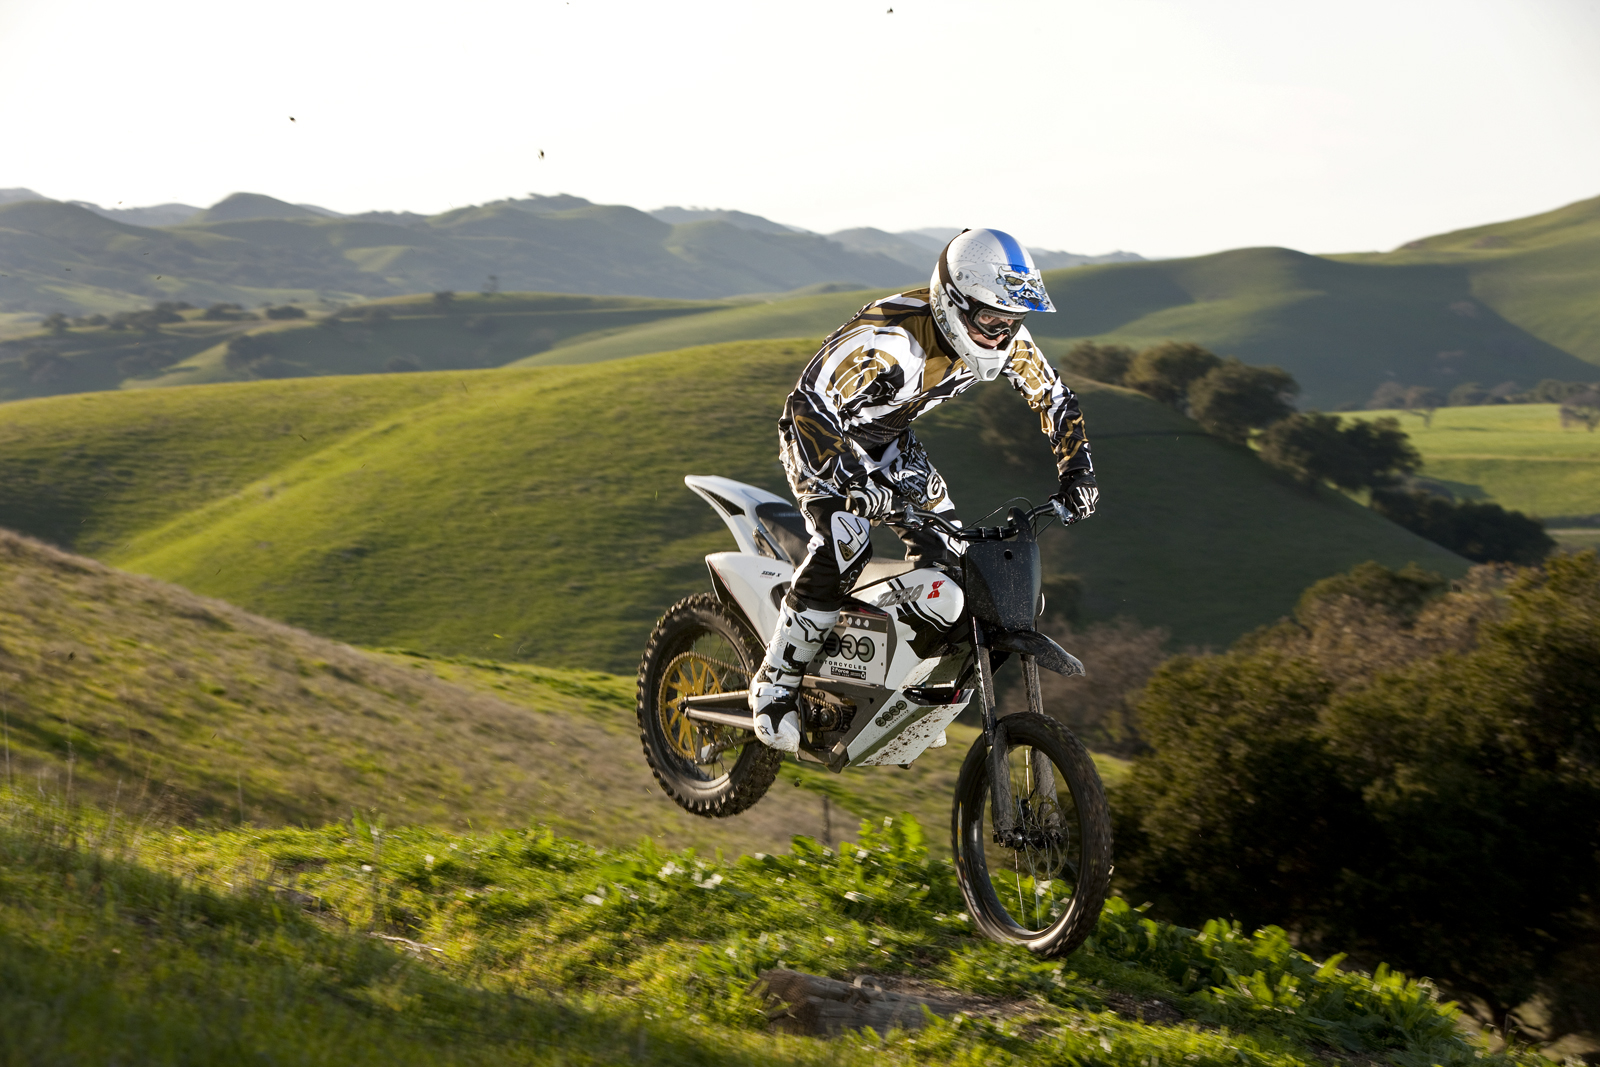 2010 Zero X Electric Motorcycle: Zaca Station - Wheelie on Ridge